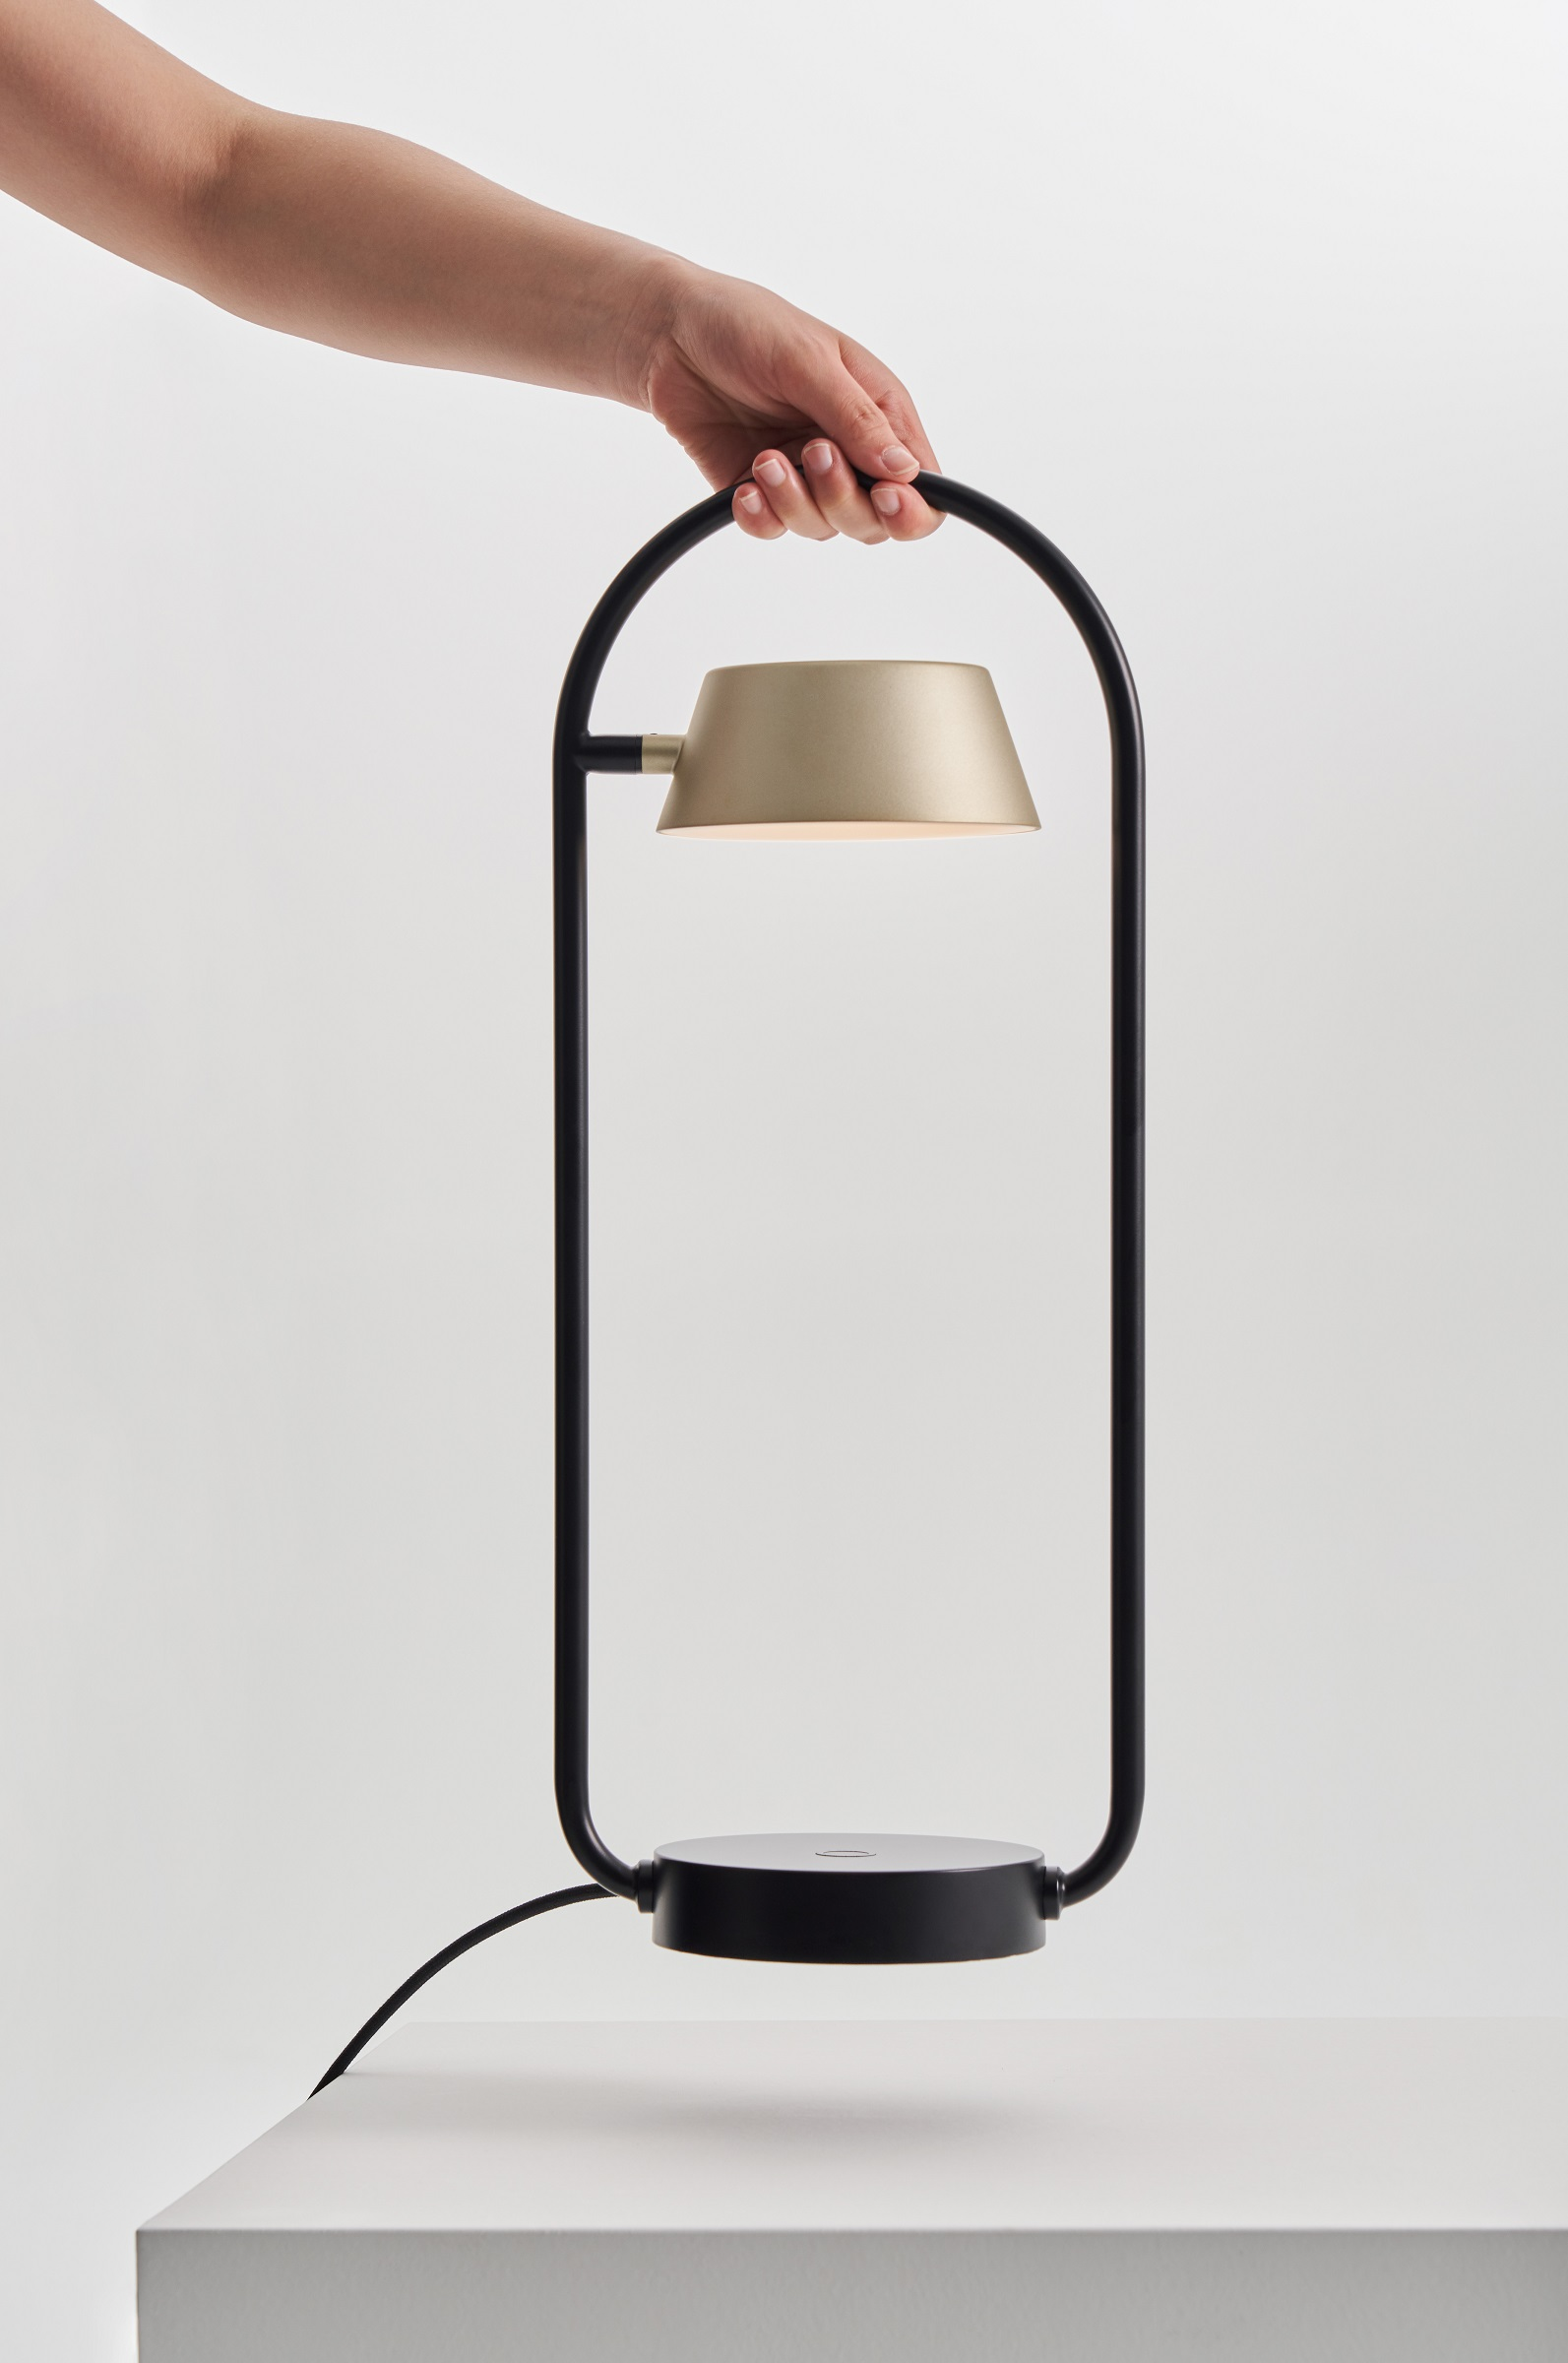 Red Dot Award Product Design 2021 OLO Table Lamp